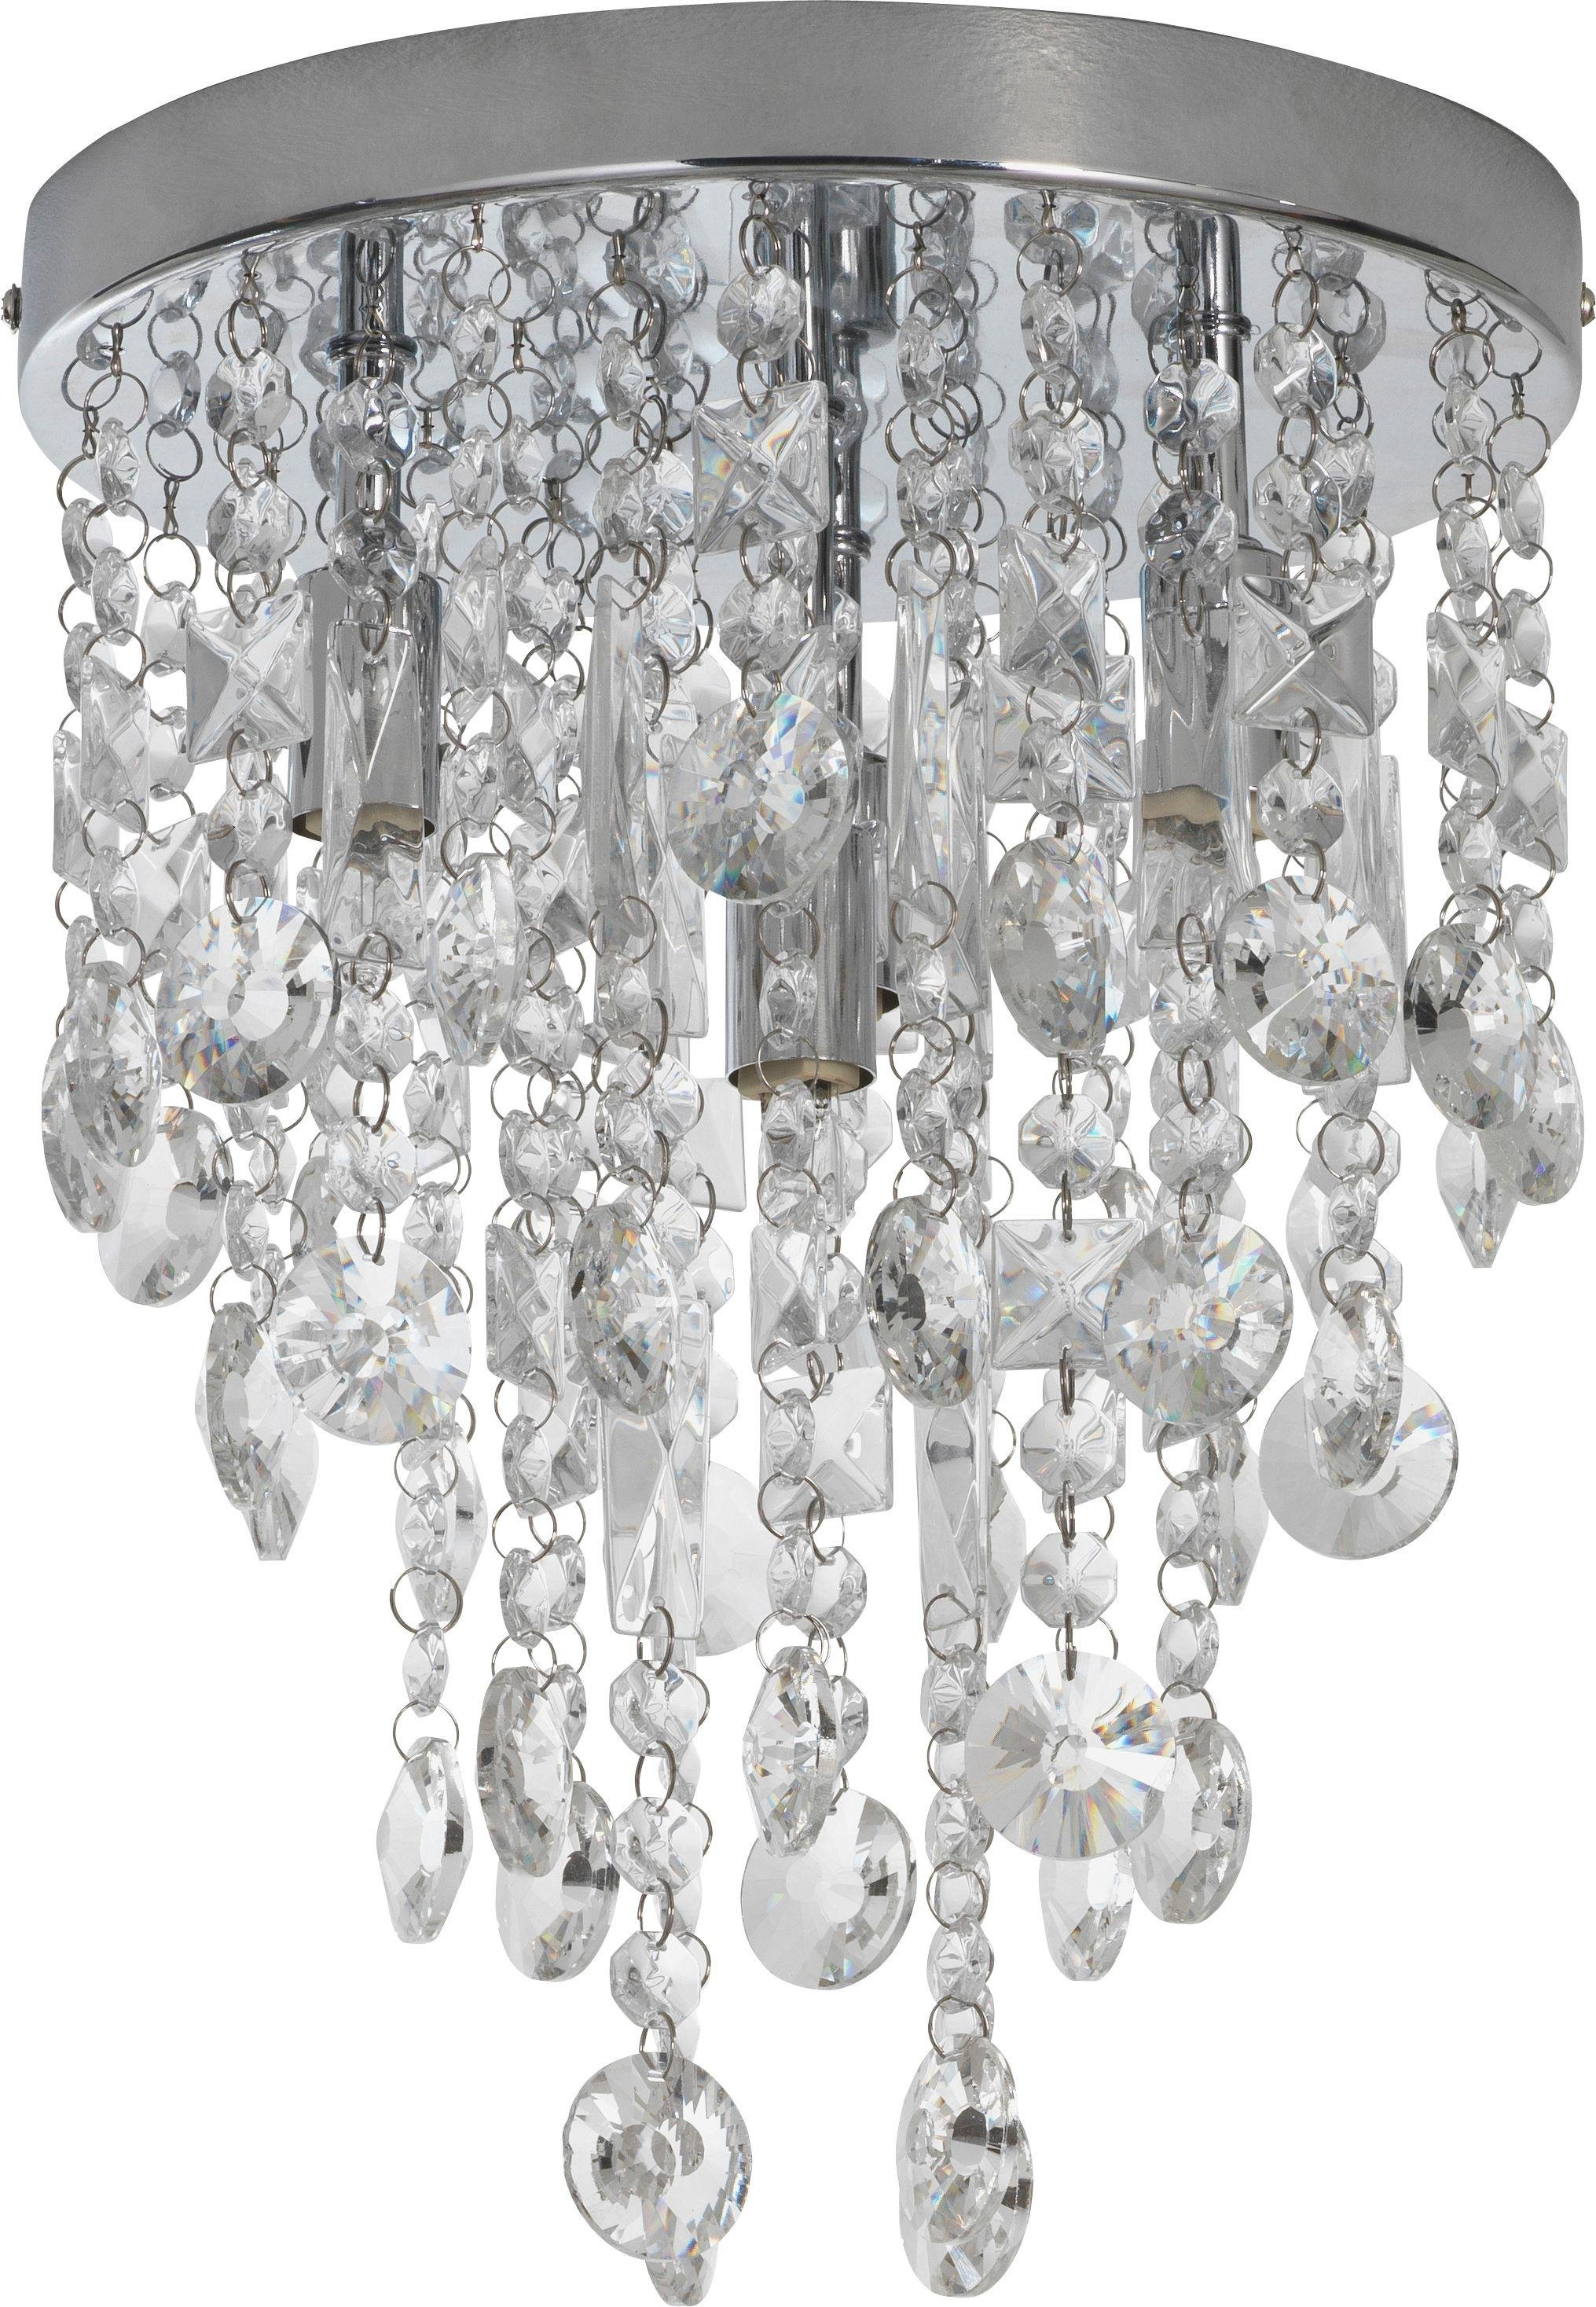 Buy Harry Potter Ceiling And Wall Lights At Argos Co Uk